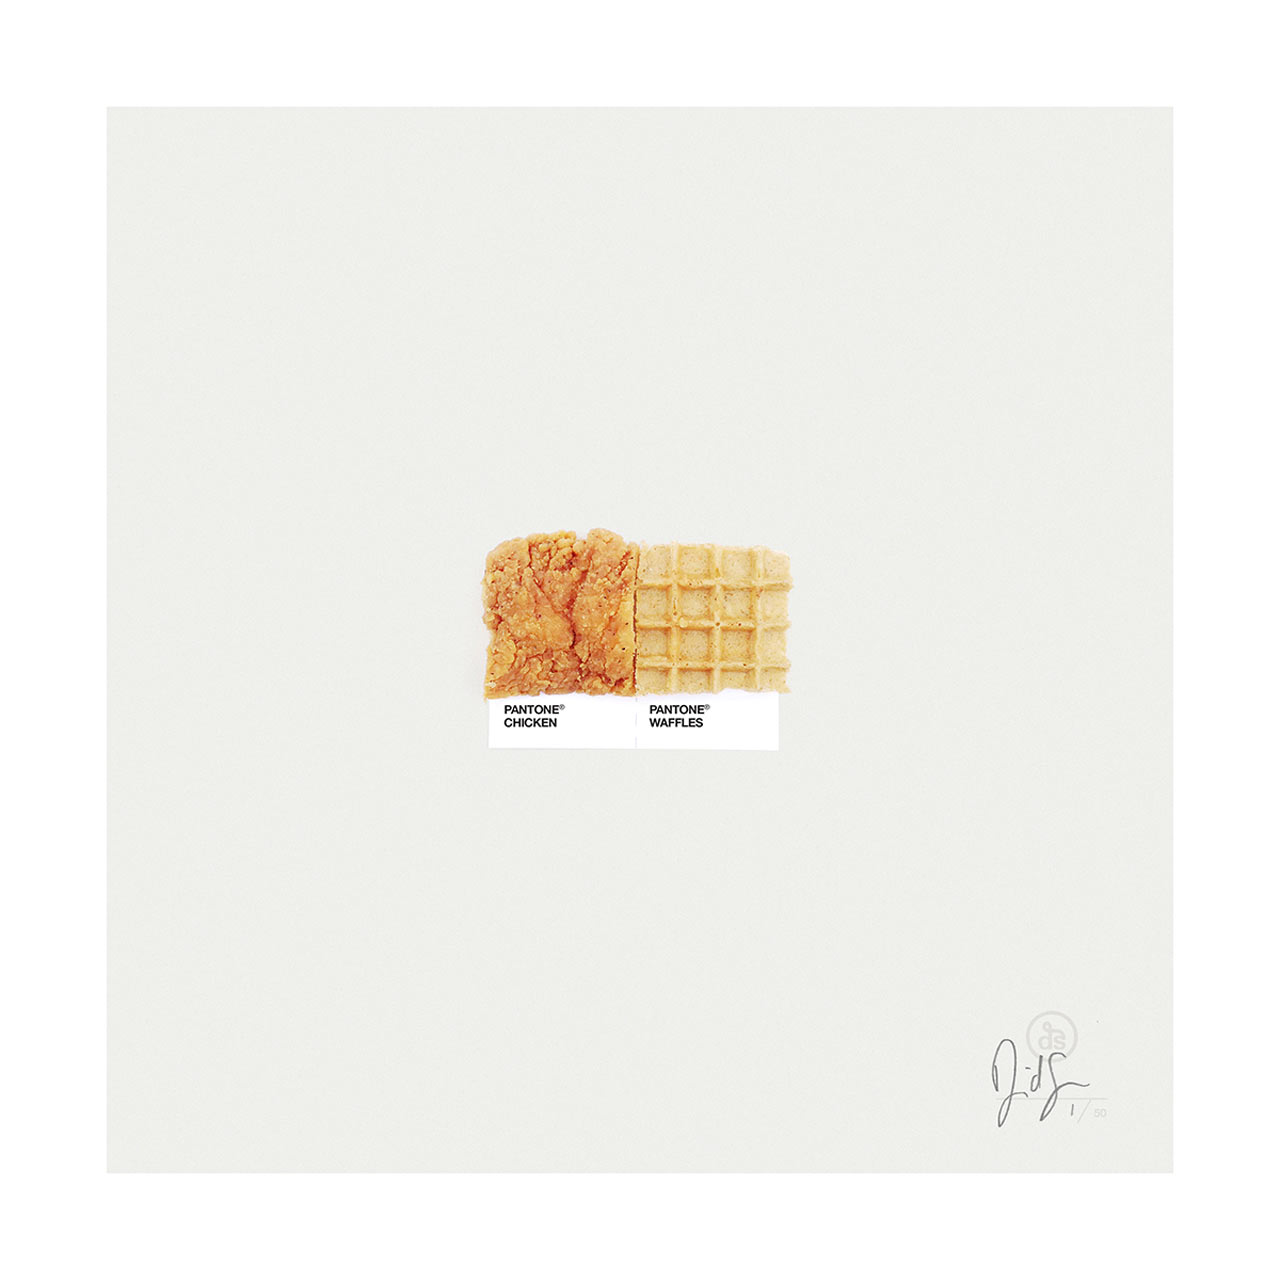 Pantone-Pairings-17_chicken_waffles